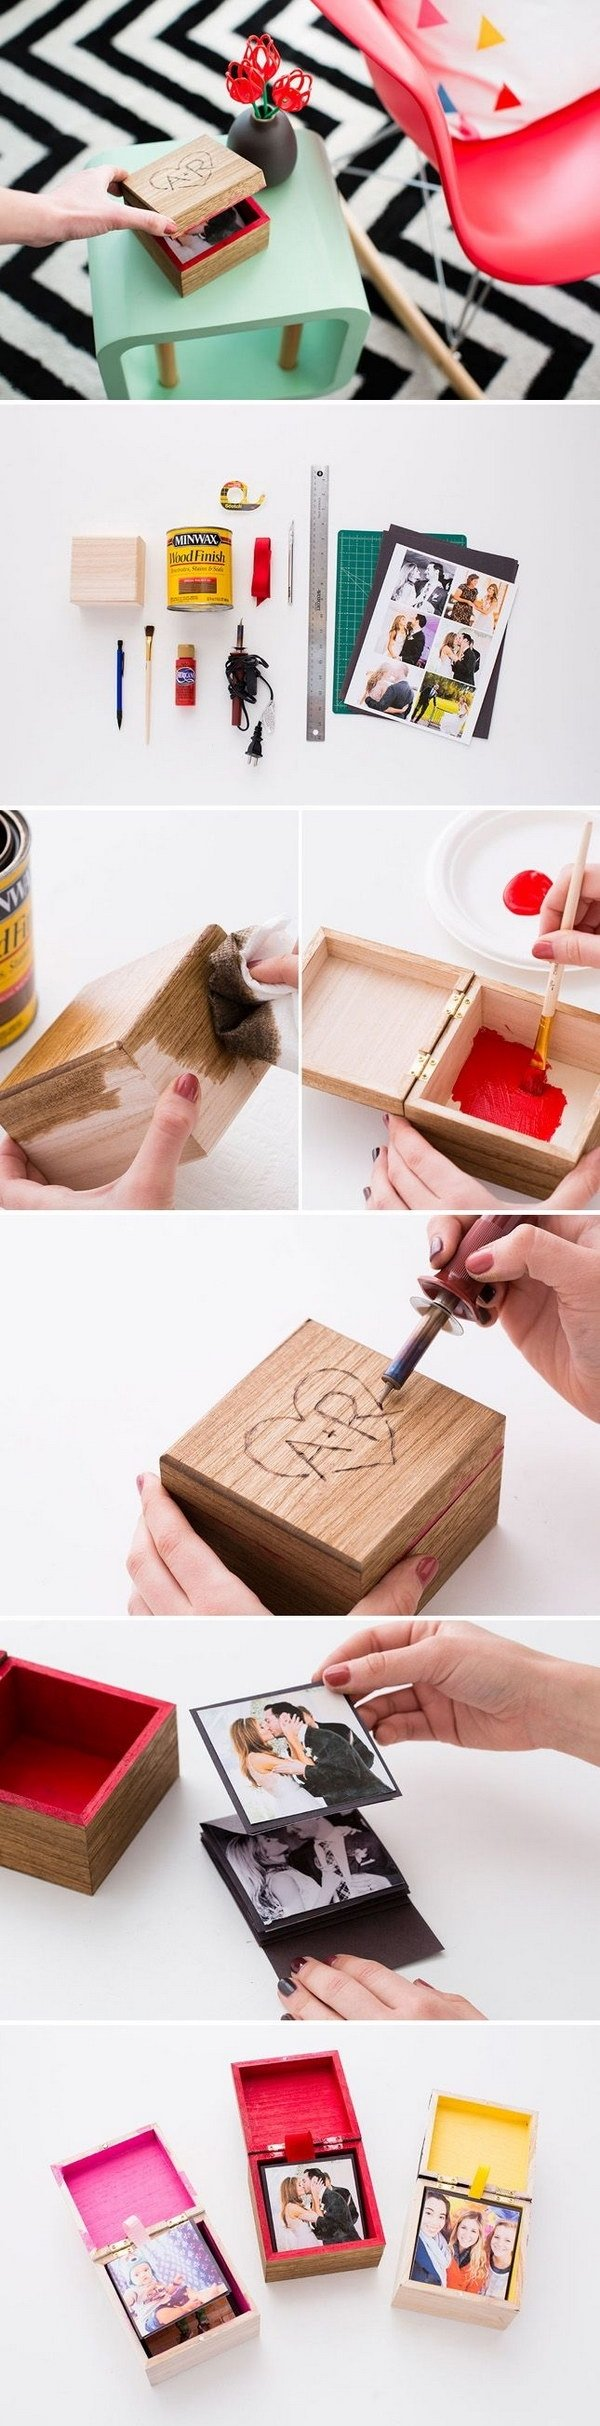 10 Nice Diy Gift Ideas For Boyfriend 25 diy gifts for him with lots of tutorials 2017 11